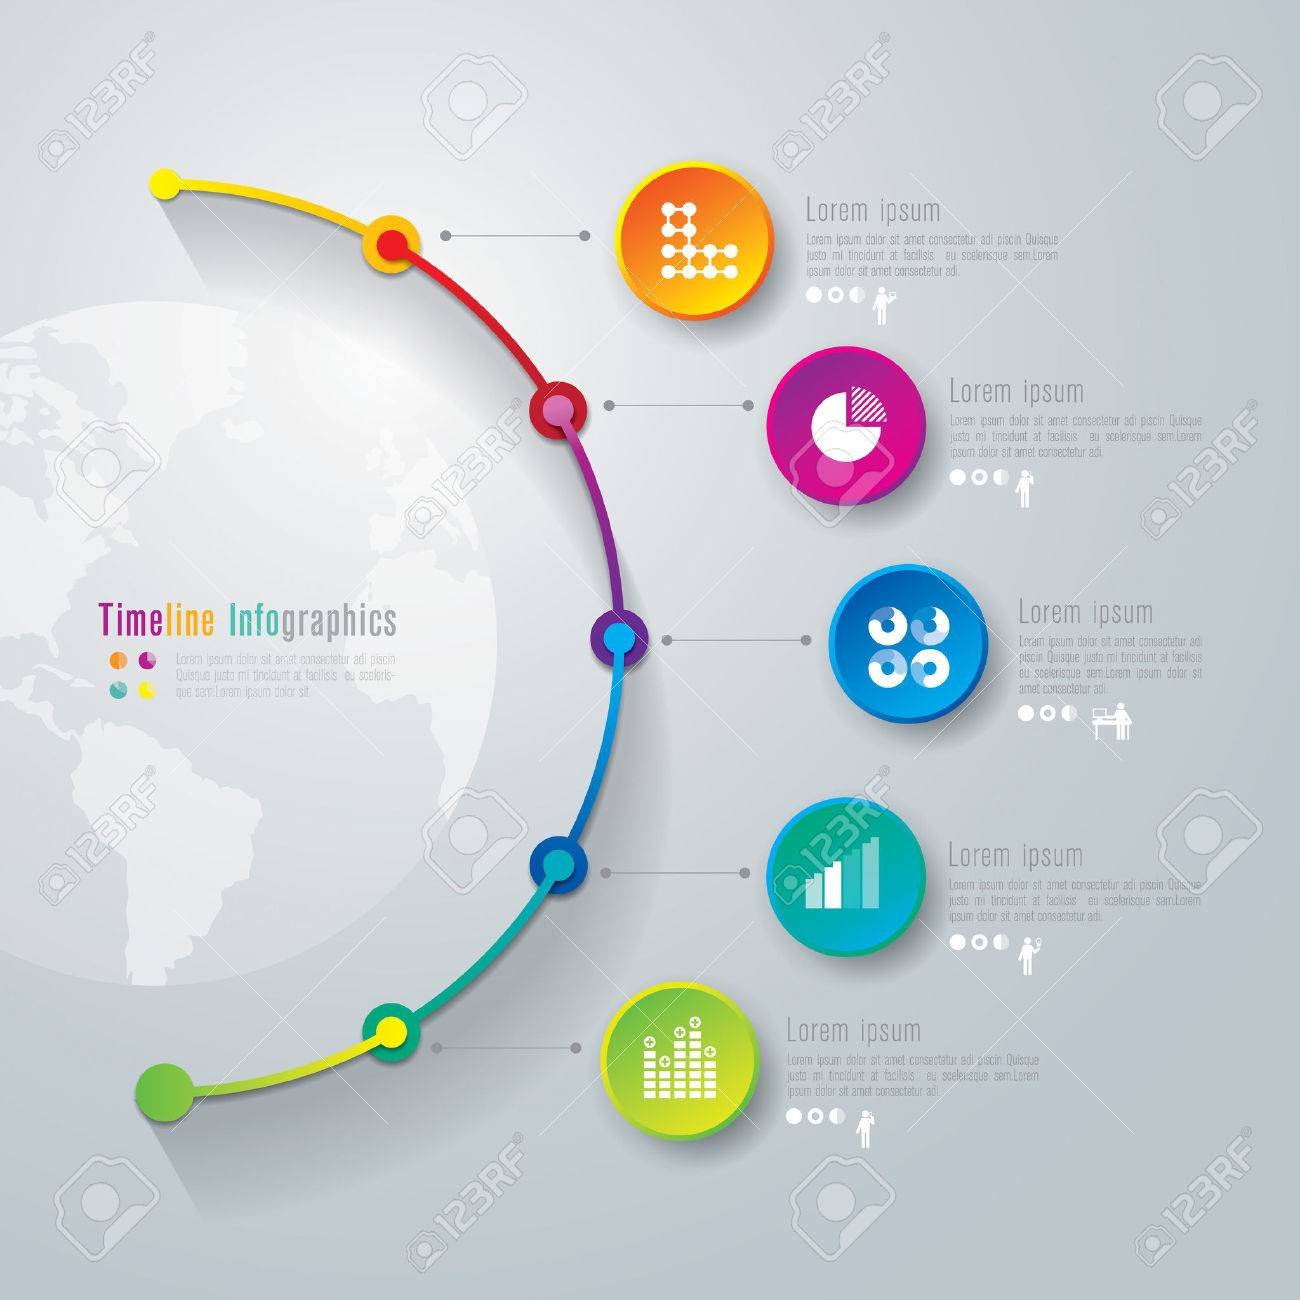 timeline infographics design template royalty free cliparts vectors